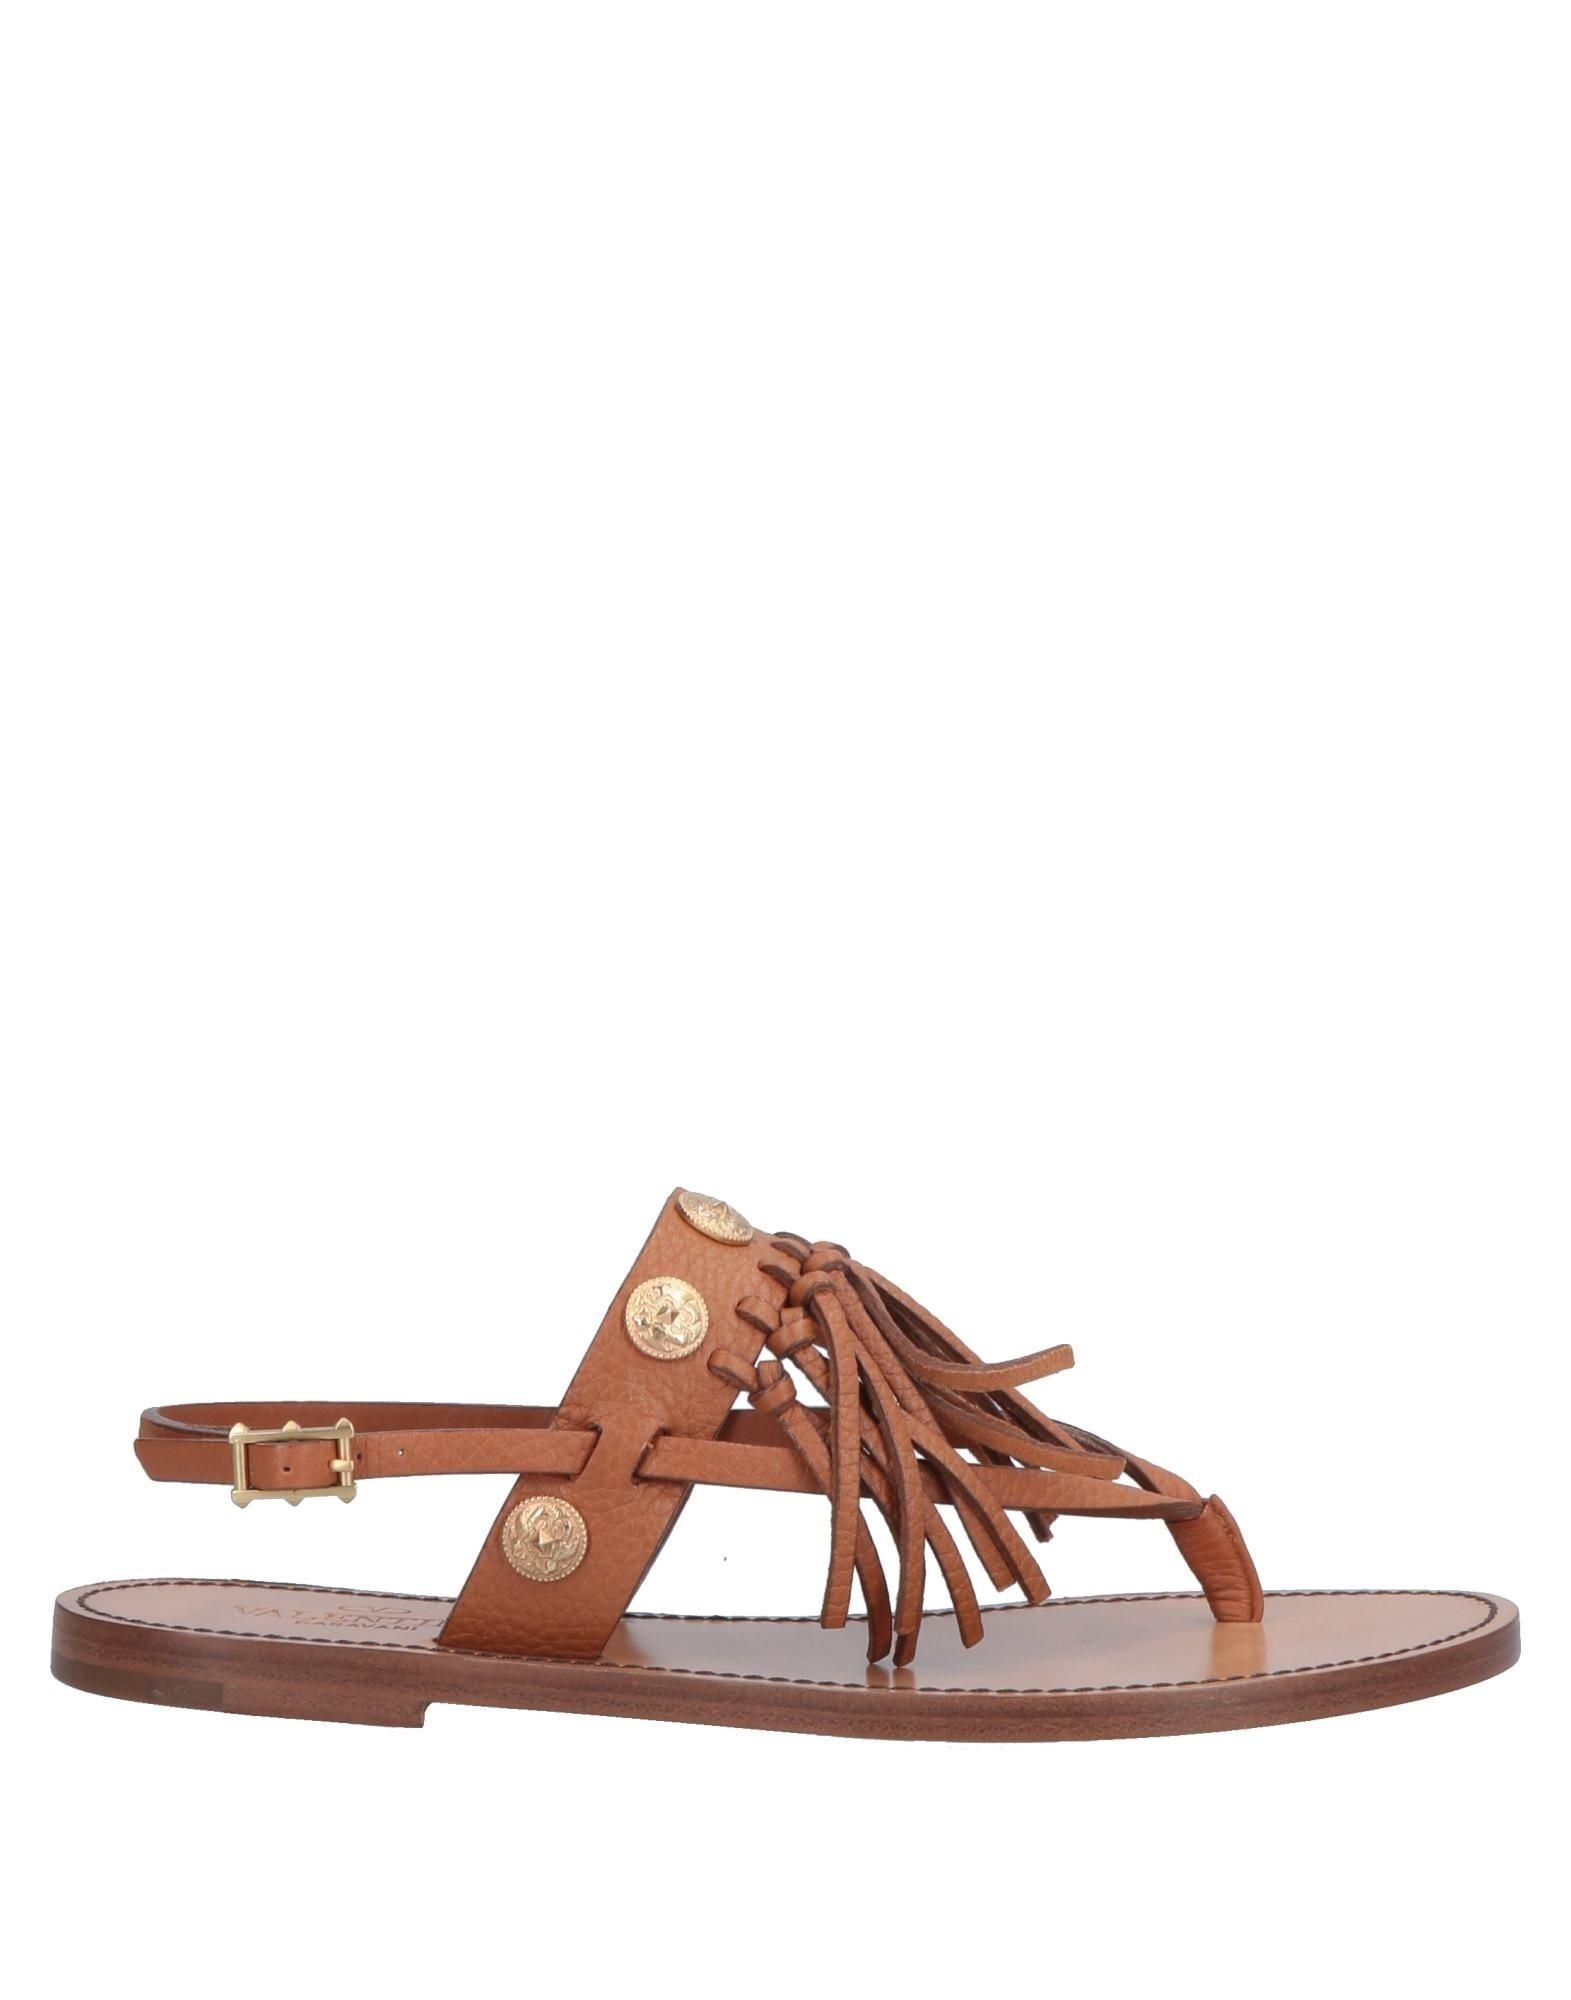 0fd907ef3d69 Lyst - Valentino Toe Strap Sandal in Brown